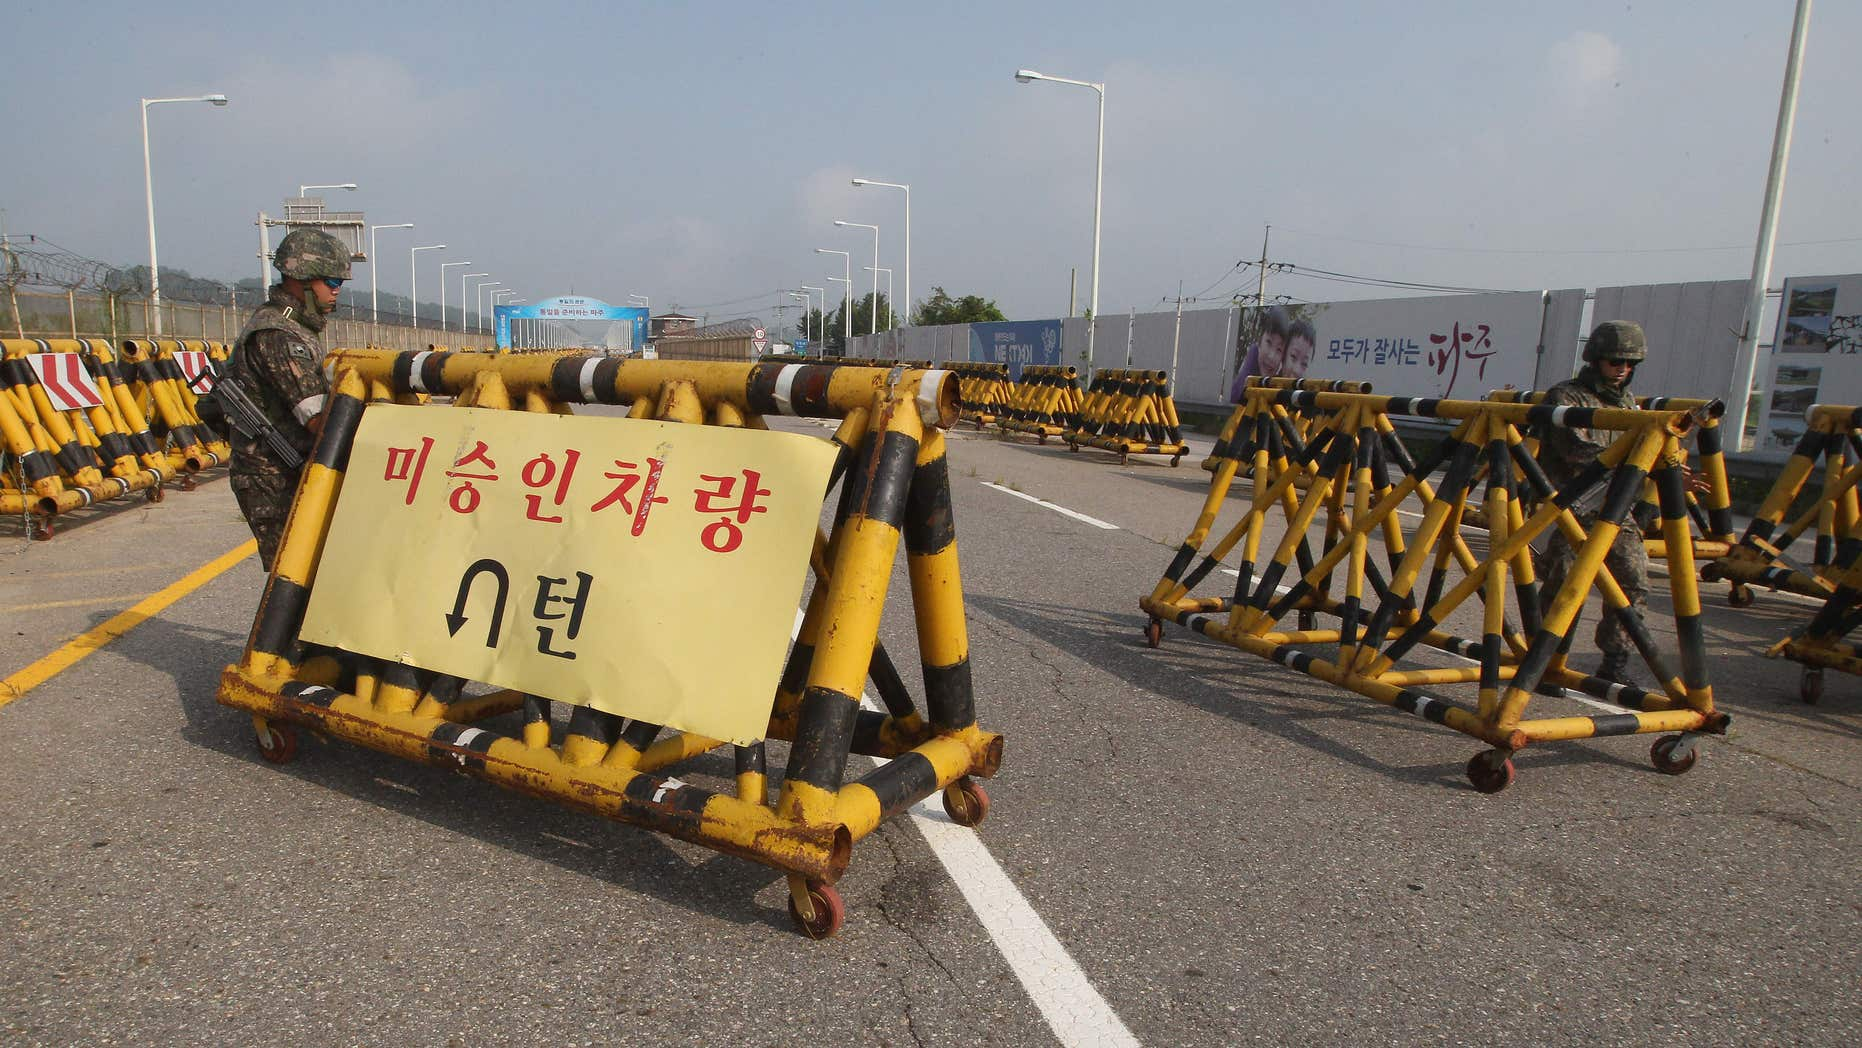 Aug. 22, 2015: South Korean army soldiers adjust barricades set up on Unification Bridge, which leads to the demilitarized zone, near the border village of Panmunjom in Paju, South Korea.